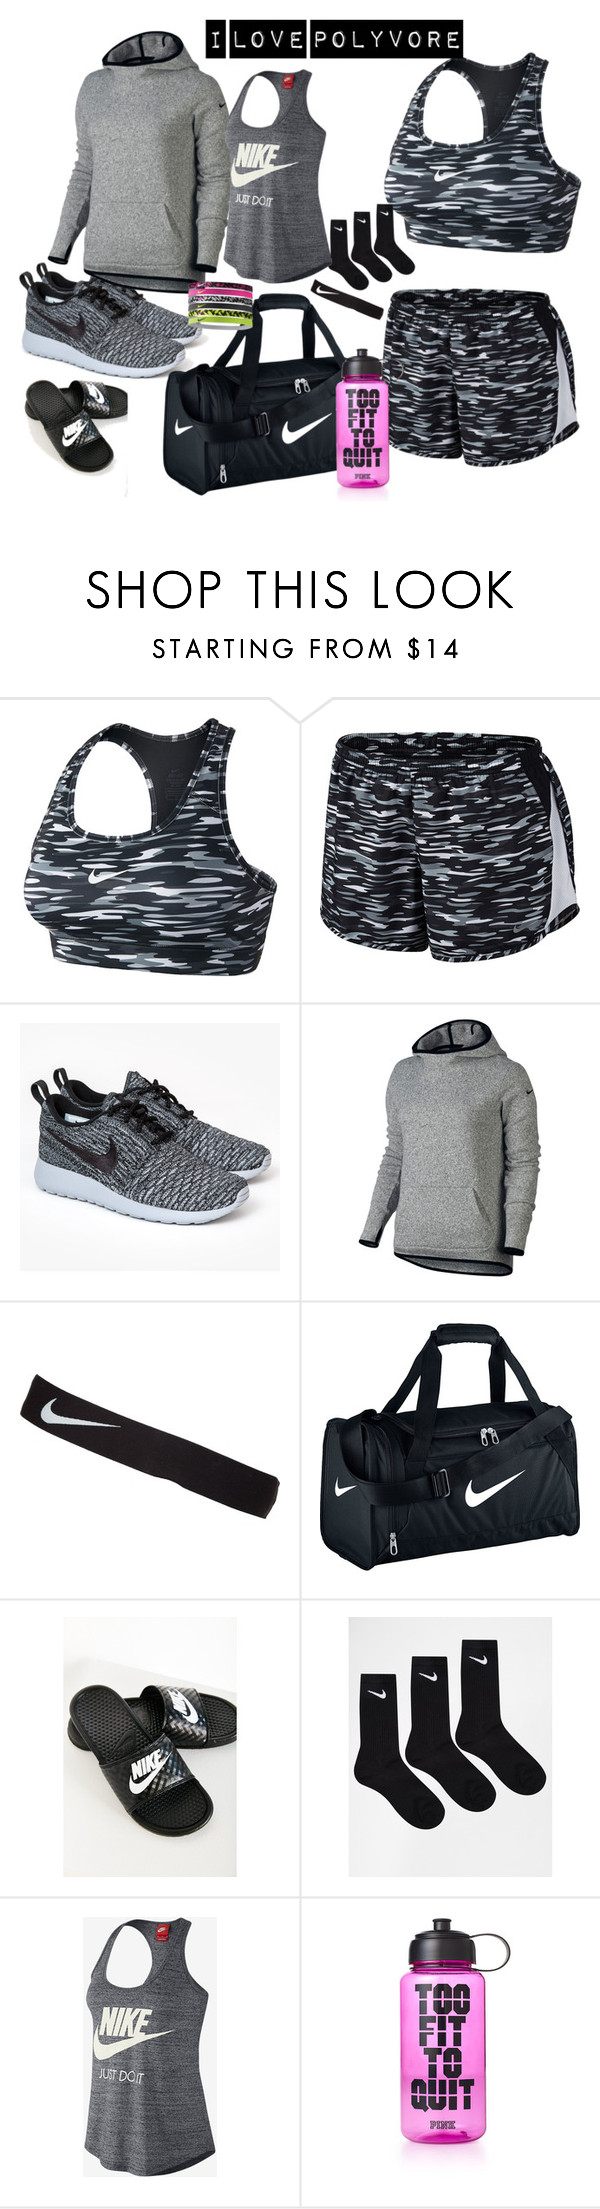 """""""Untitled #98"""" by allofme555 ❤ liked on Polyvore featuring NIKE and Victoria's Secret PINK"""